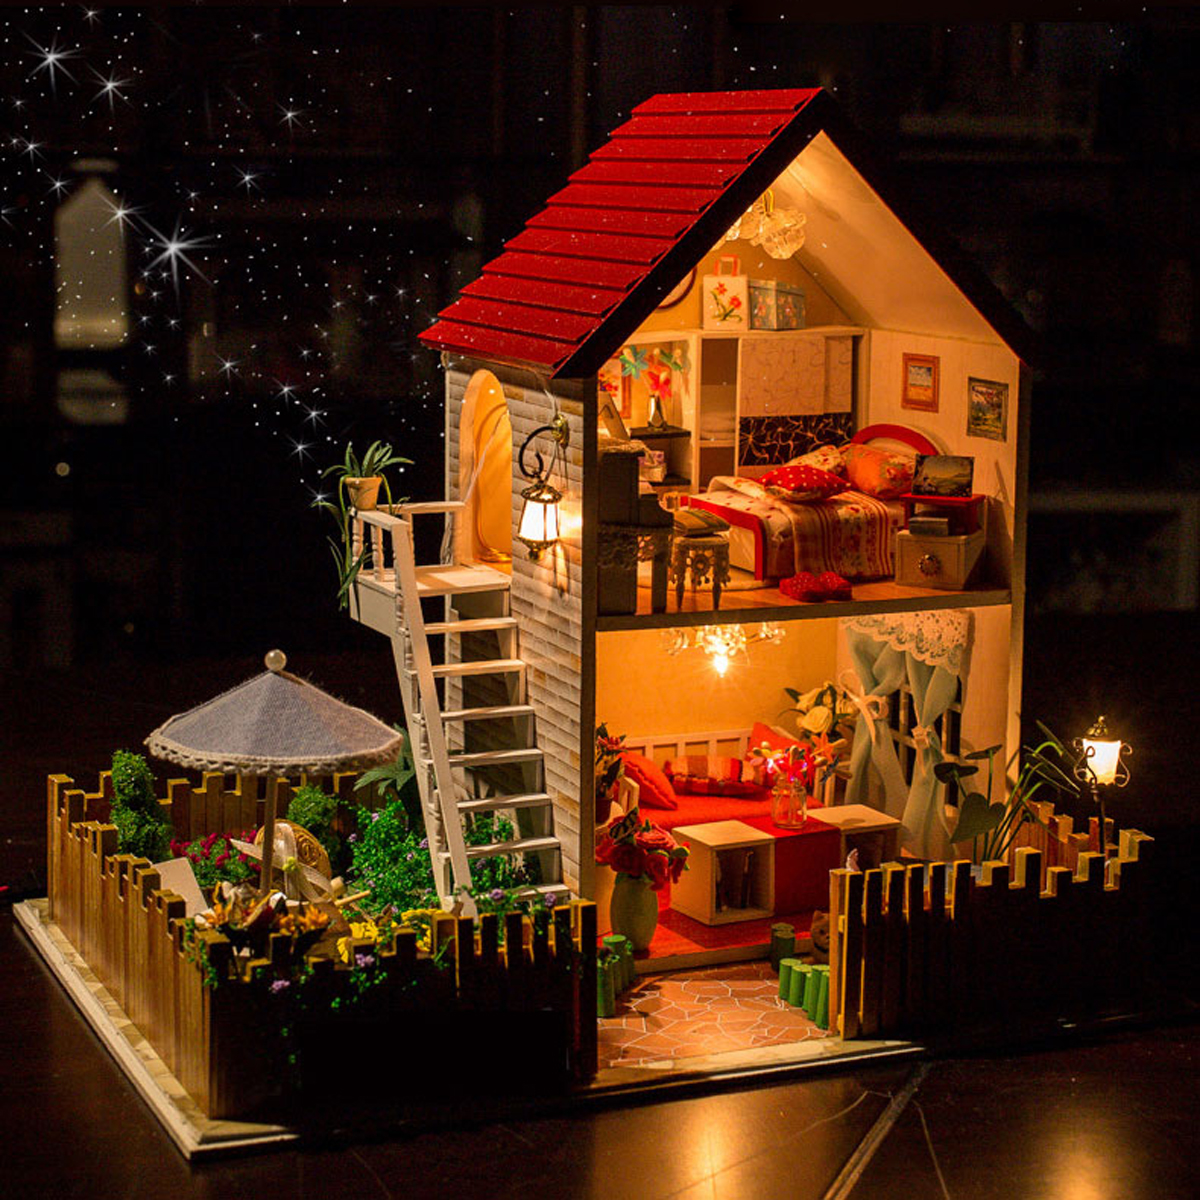 Hoomeda 13828 The Star Dreaming House DIY Dollhouse With Light Music Miniature Model Gift Decor